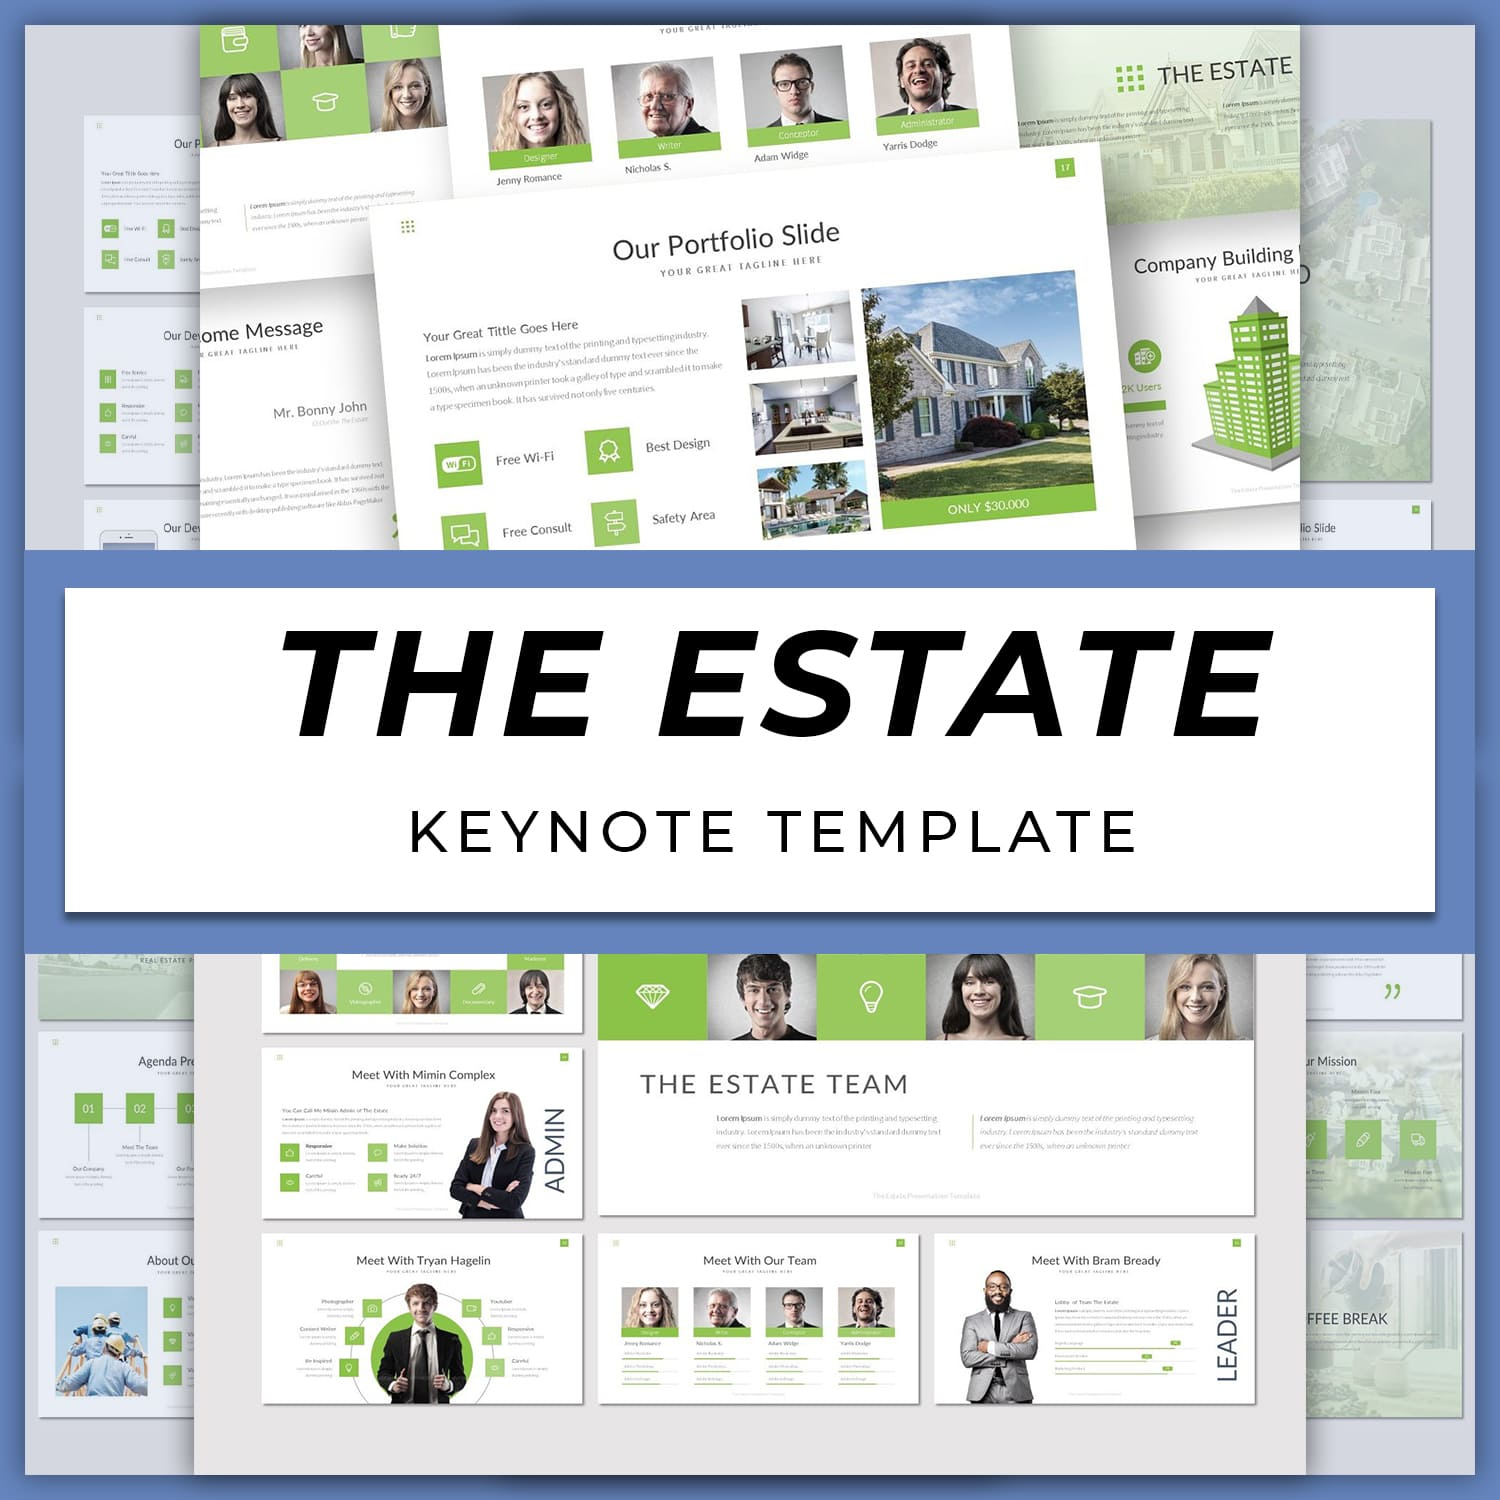 The Estate - Keynote Template main cover.